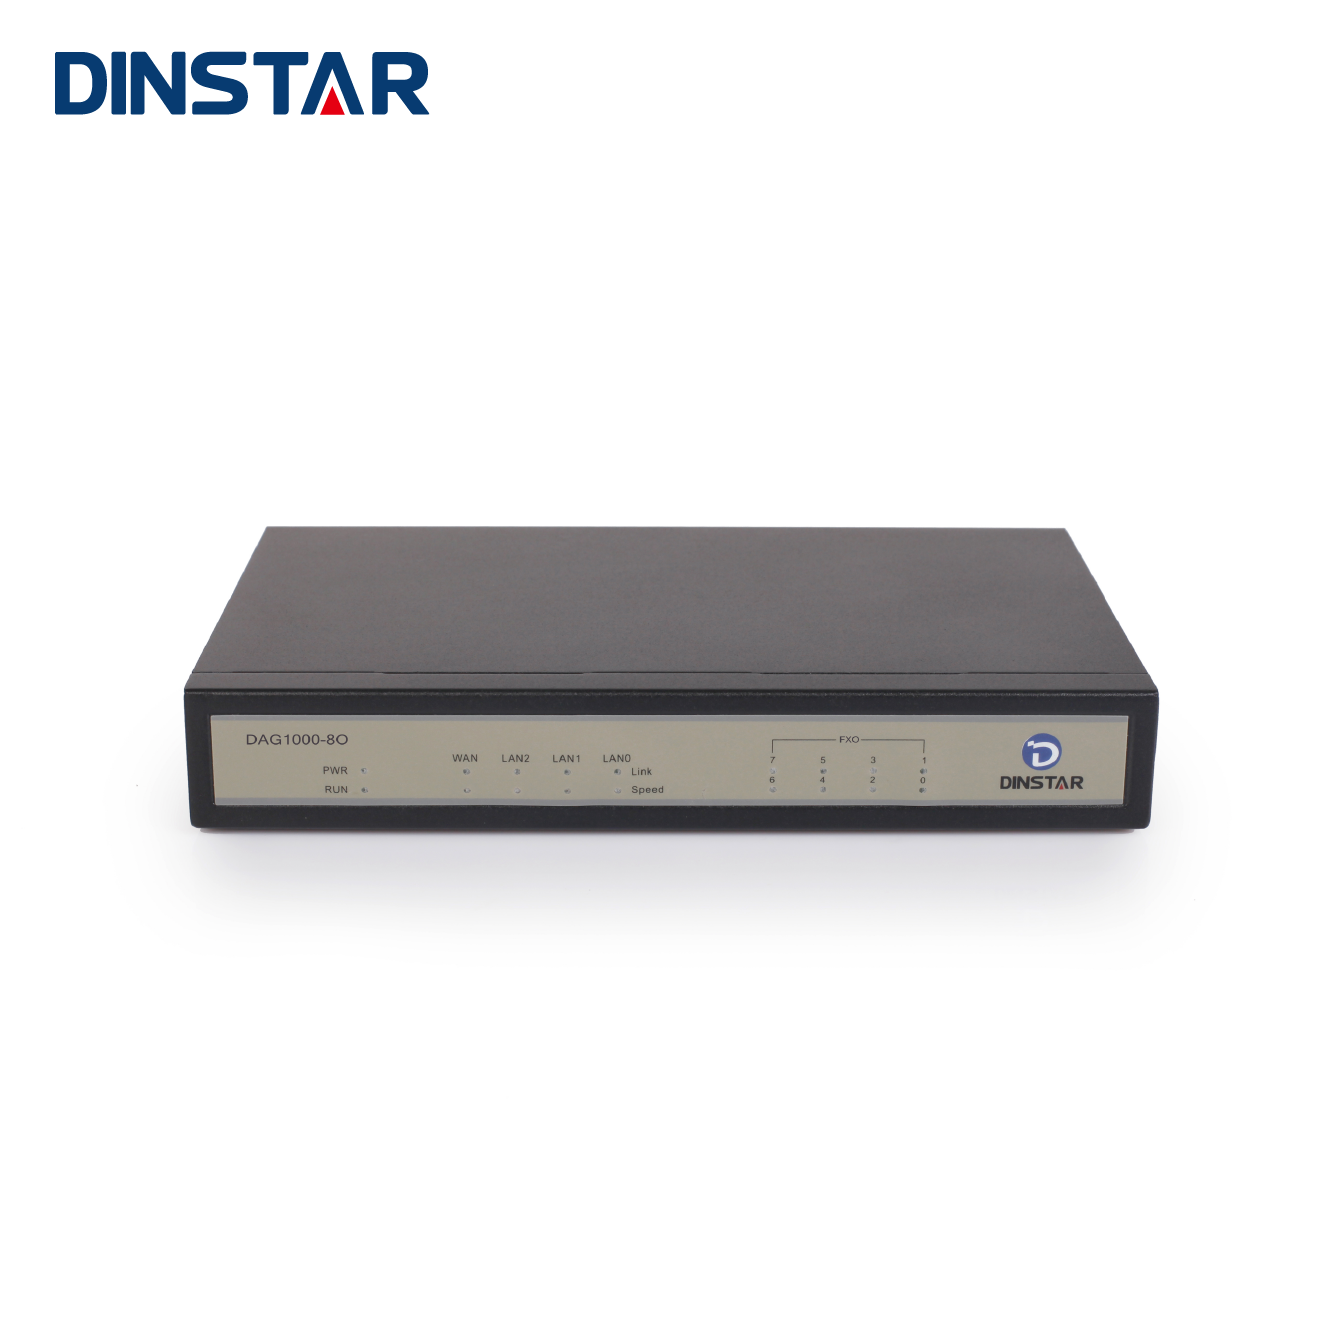 Dinstar Dag PSTN Over Ethernet Analog SIP Suara VoIP FXS FXO Gateway